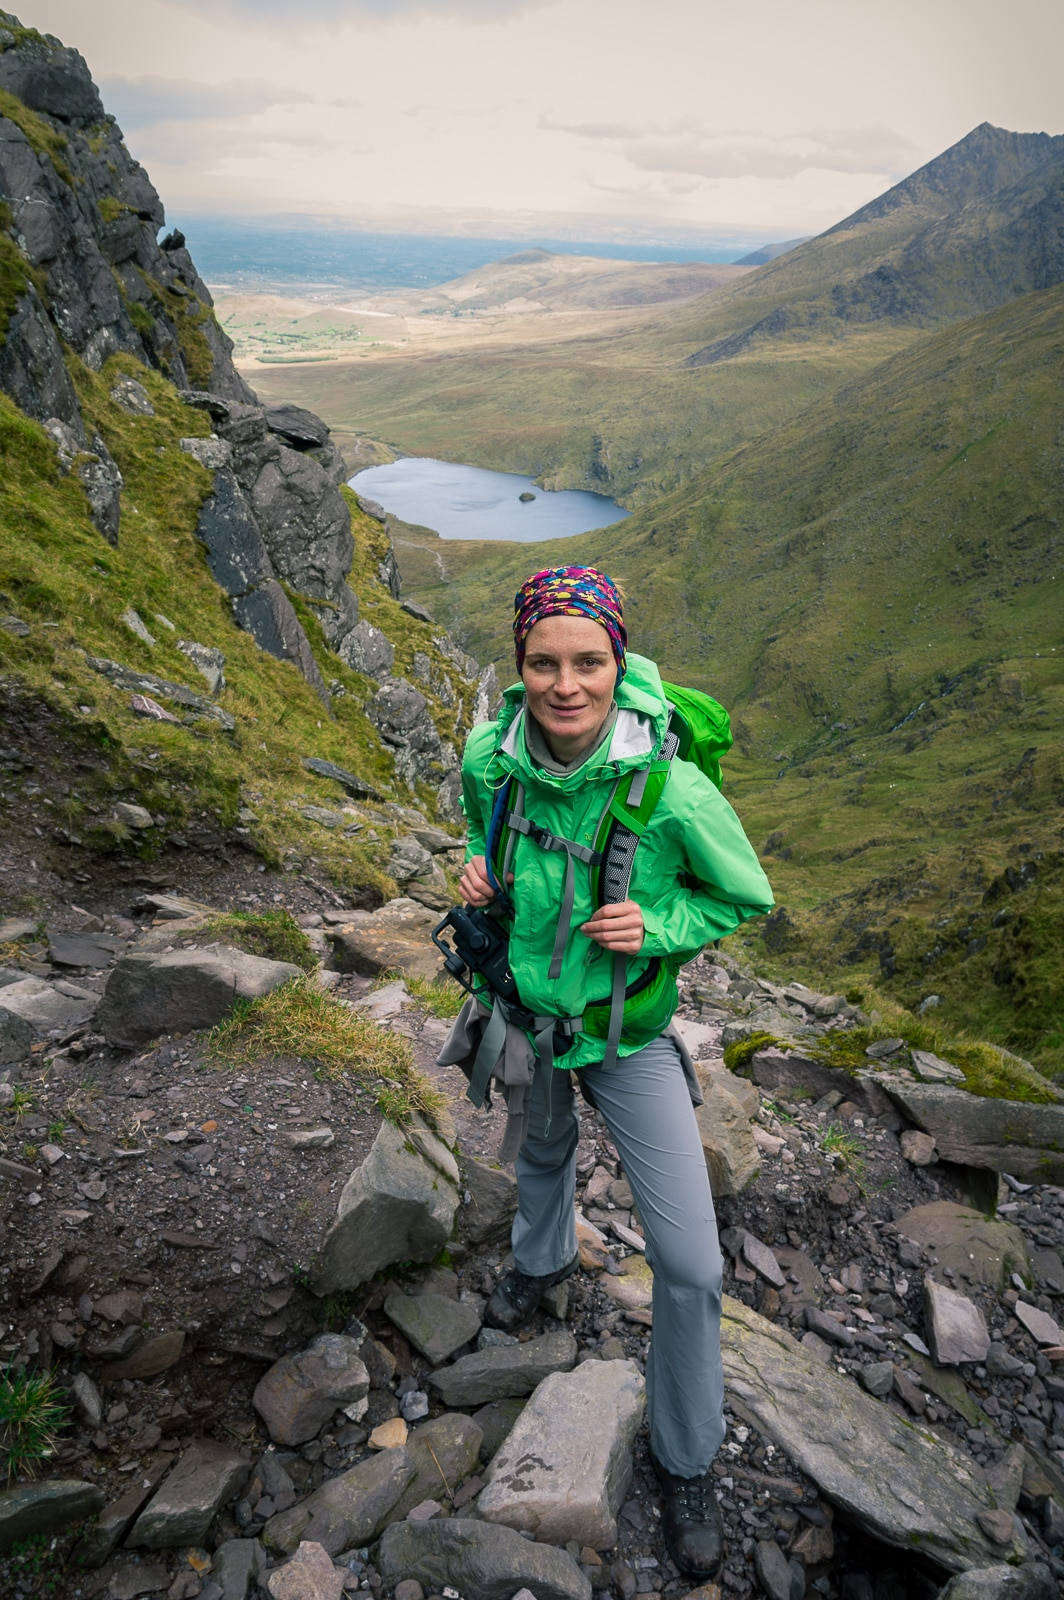 An adventure at the highest mountain peak in Ireland. The amazing hike to Carrauntoohil and how we climbed the notorious Devil\'s Ladder on the way to the summit.